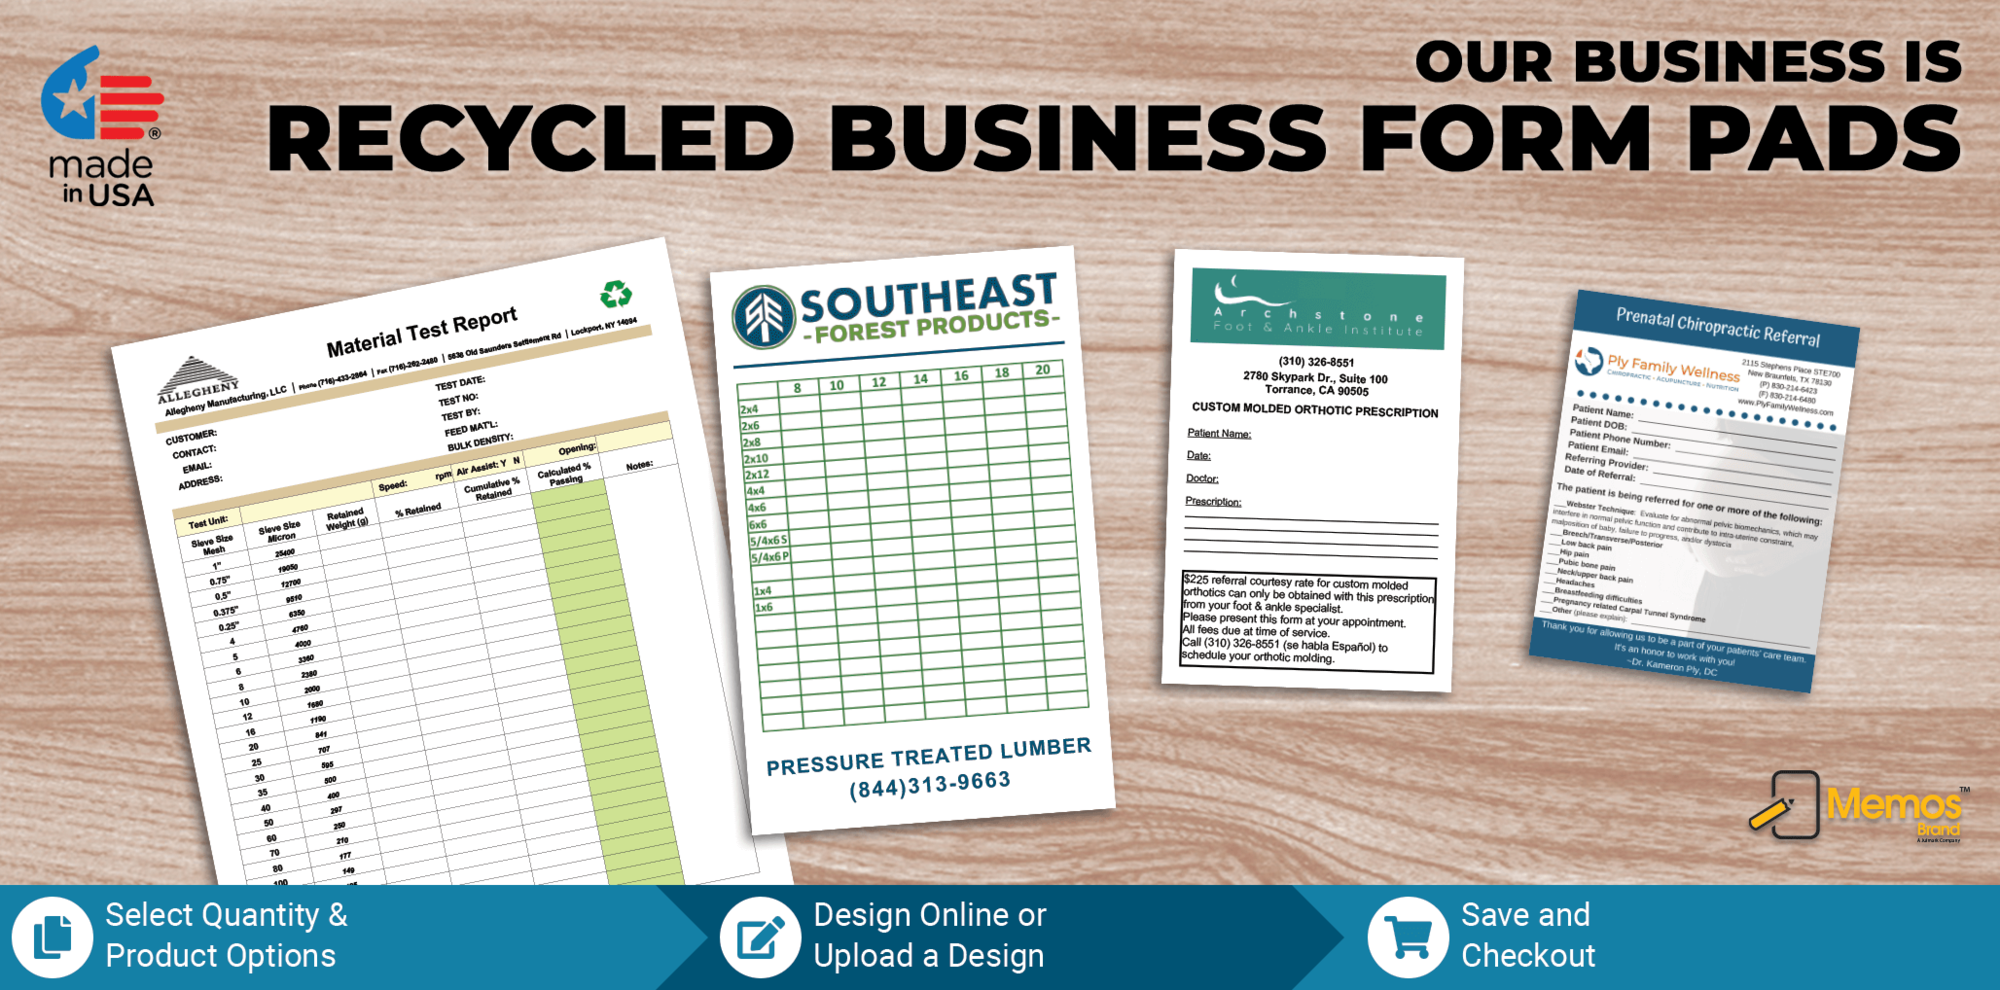 https://printpps.com/images/products_gallery_images/Banner_BusinessForms-RecycledFiber_ProdFeat_Cover40.png